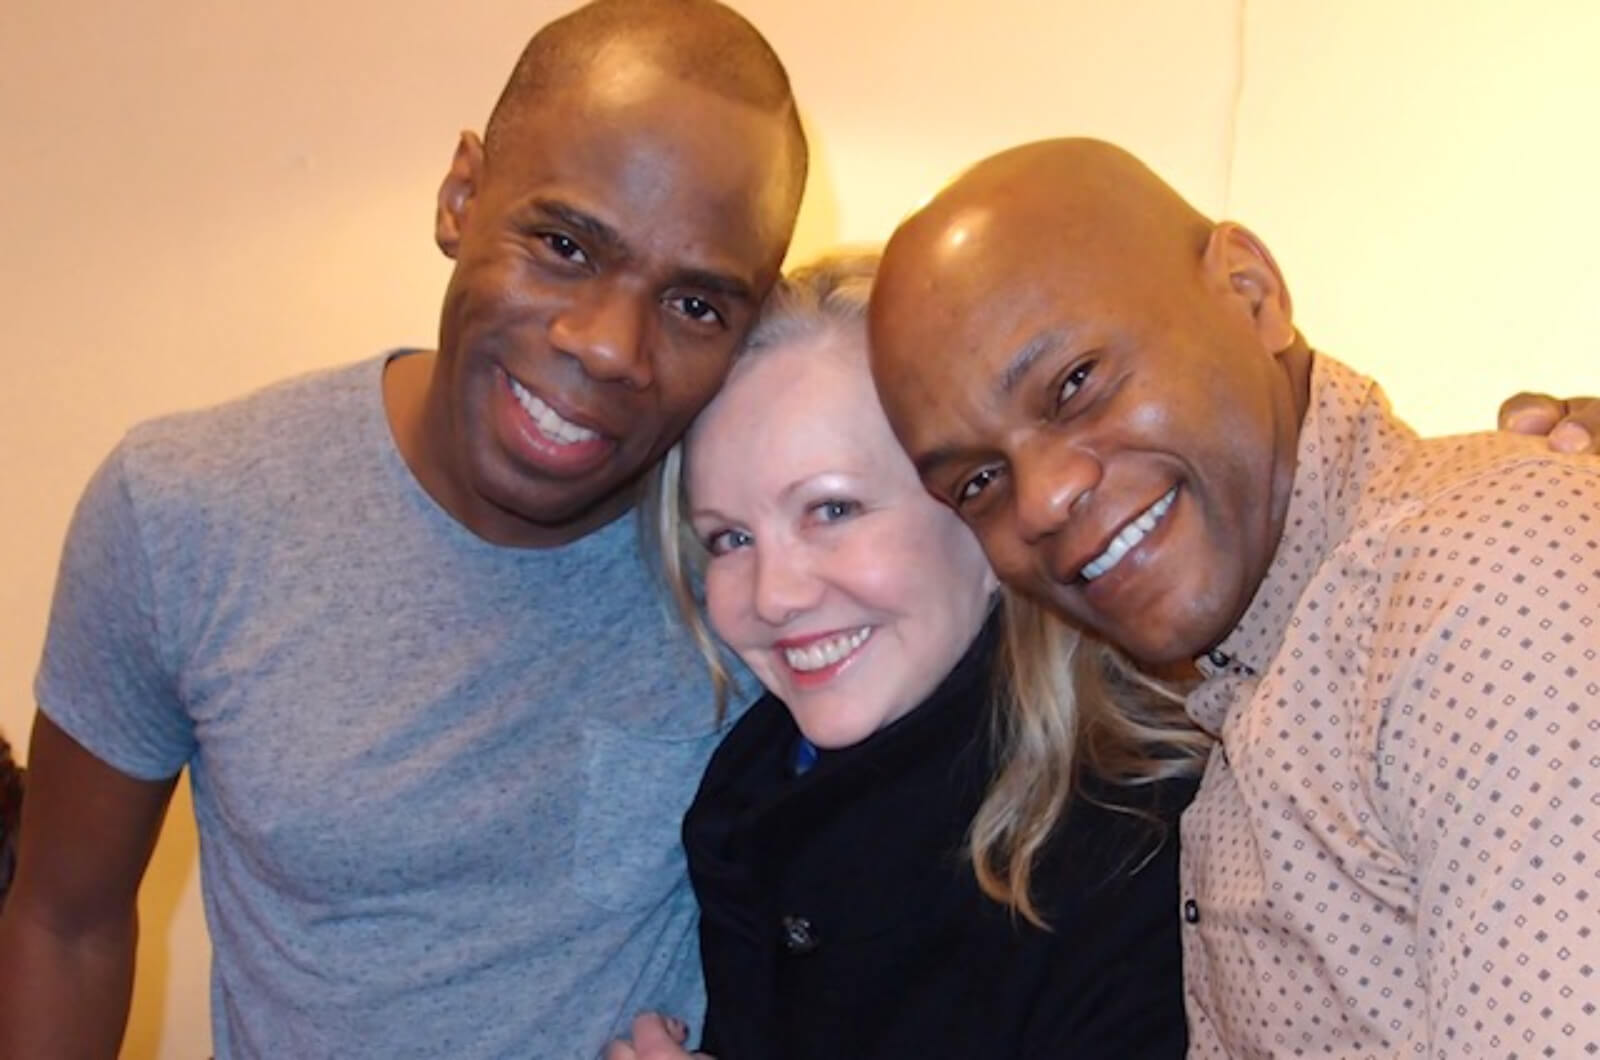 Coleman Domingo, Susan Stroman and Forrest McClendon in rehearsal. We are all smiling and happy to be together.